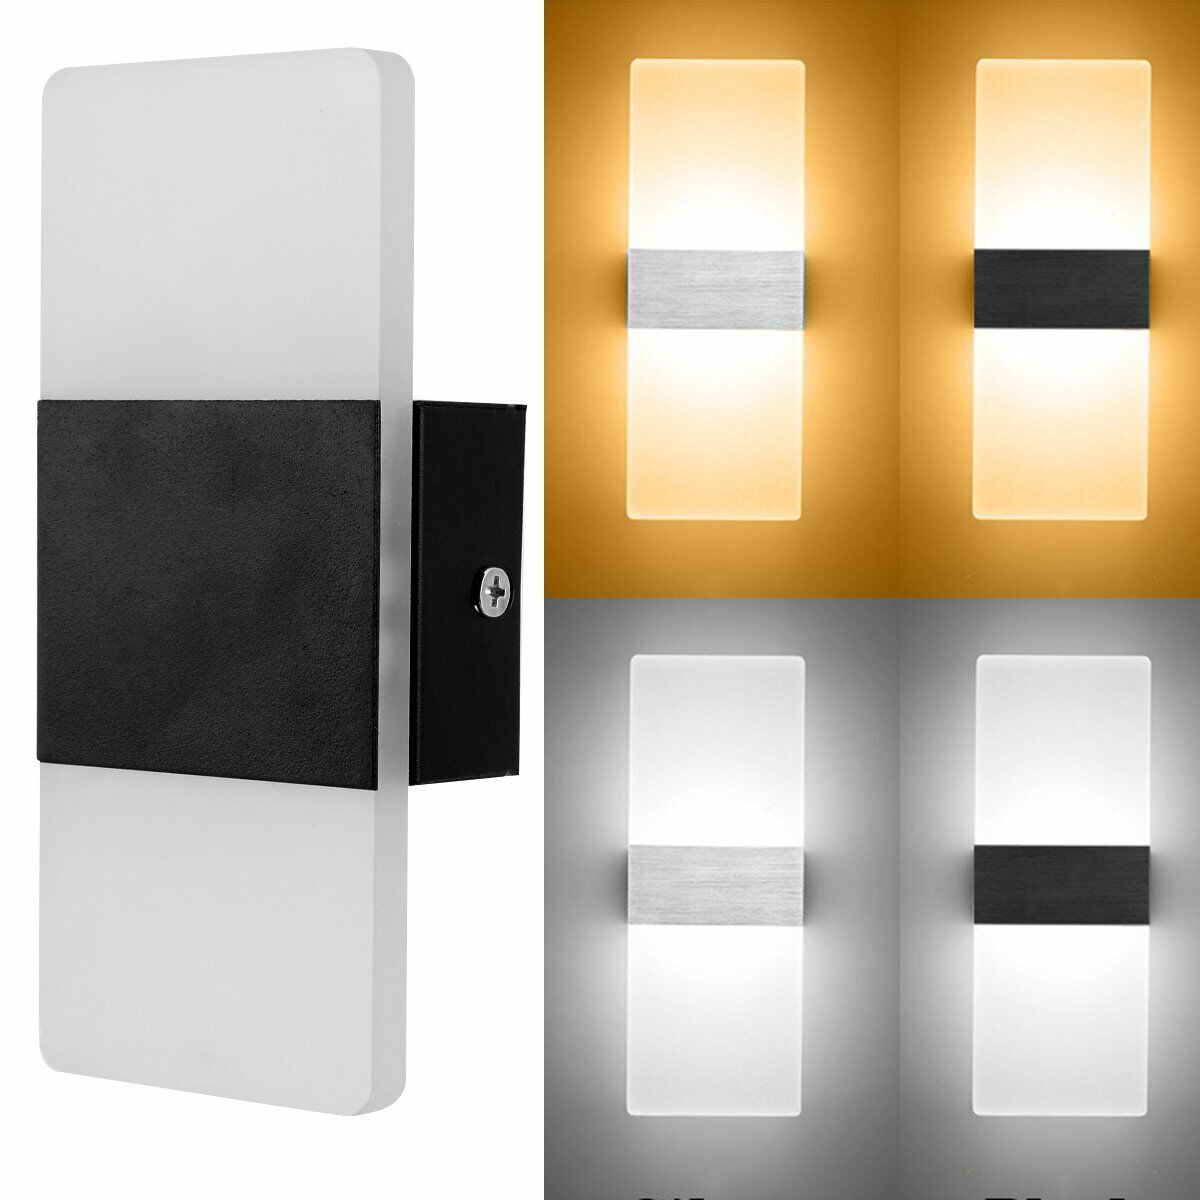 Modern LED Wall Light Up Down Indoor Outdoor Lighting Lamp S